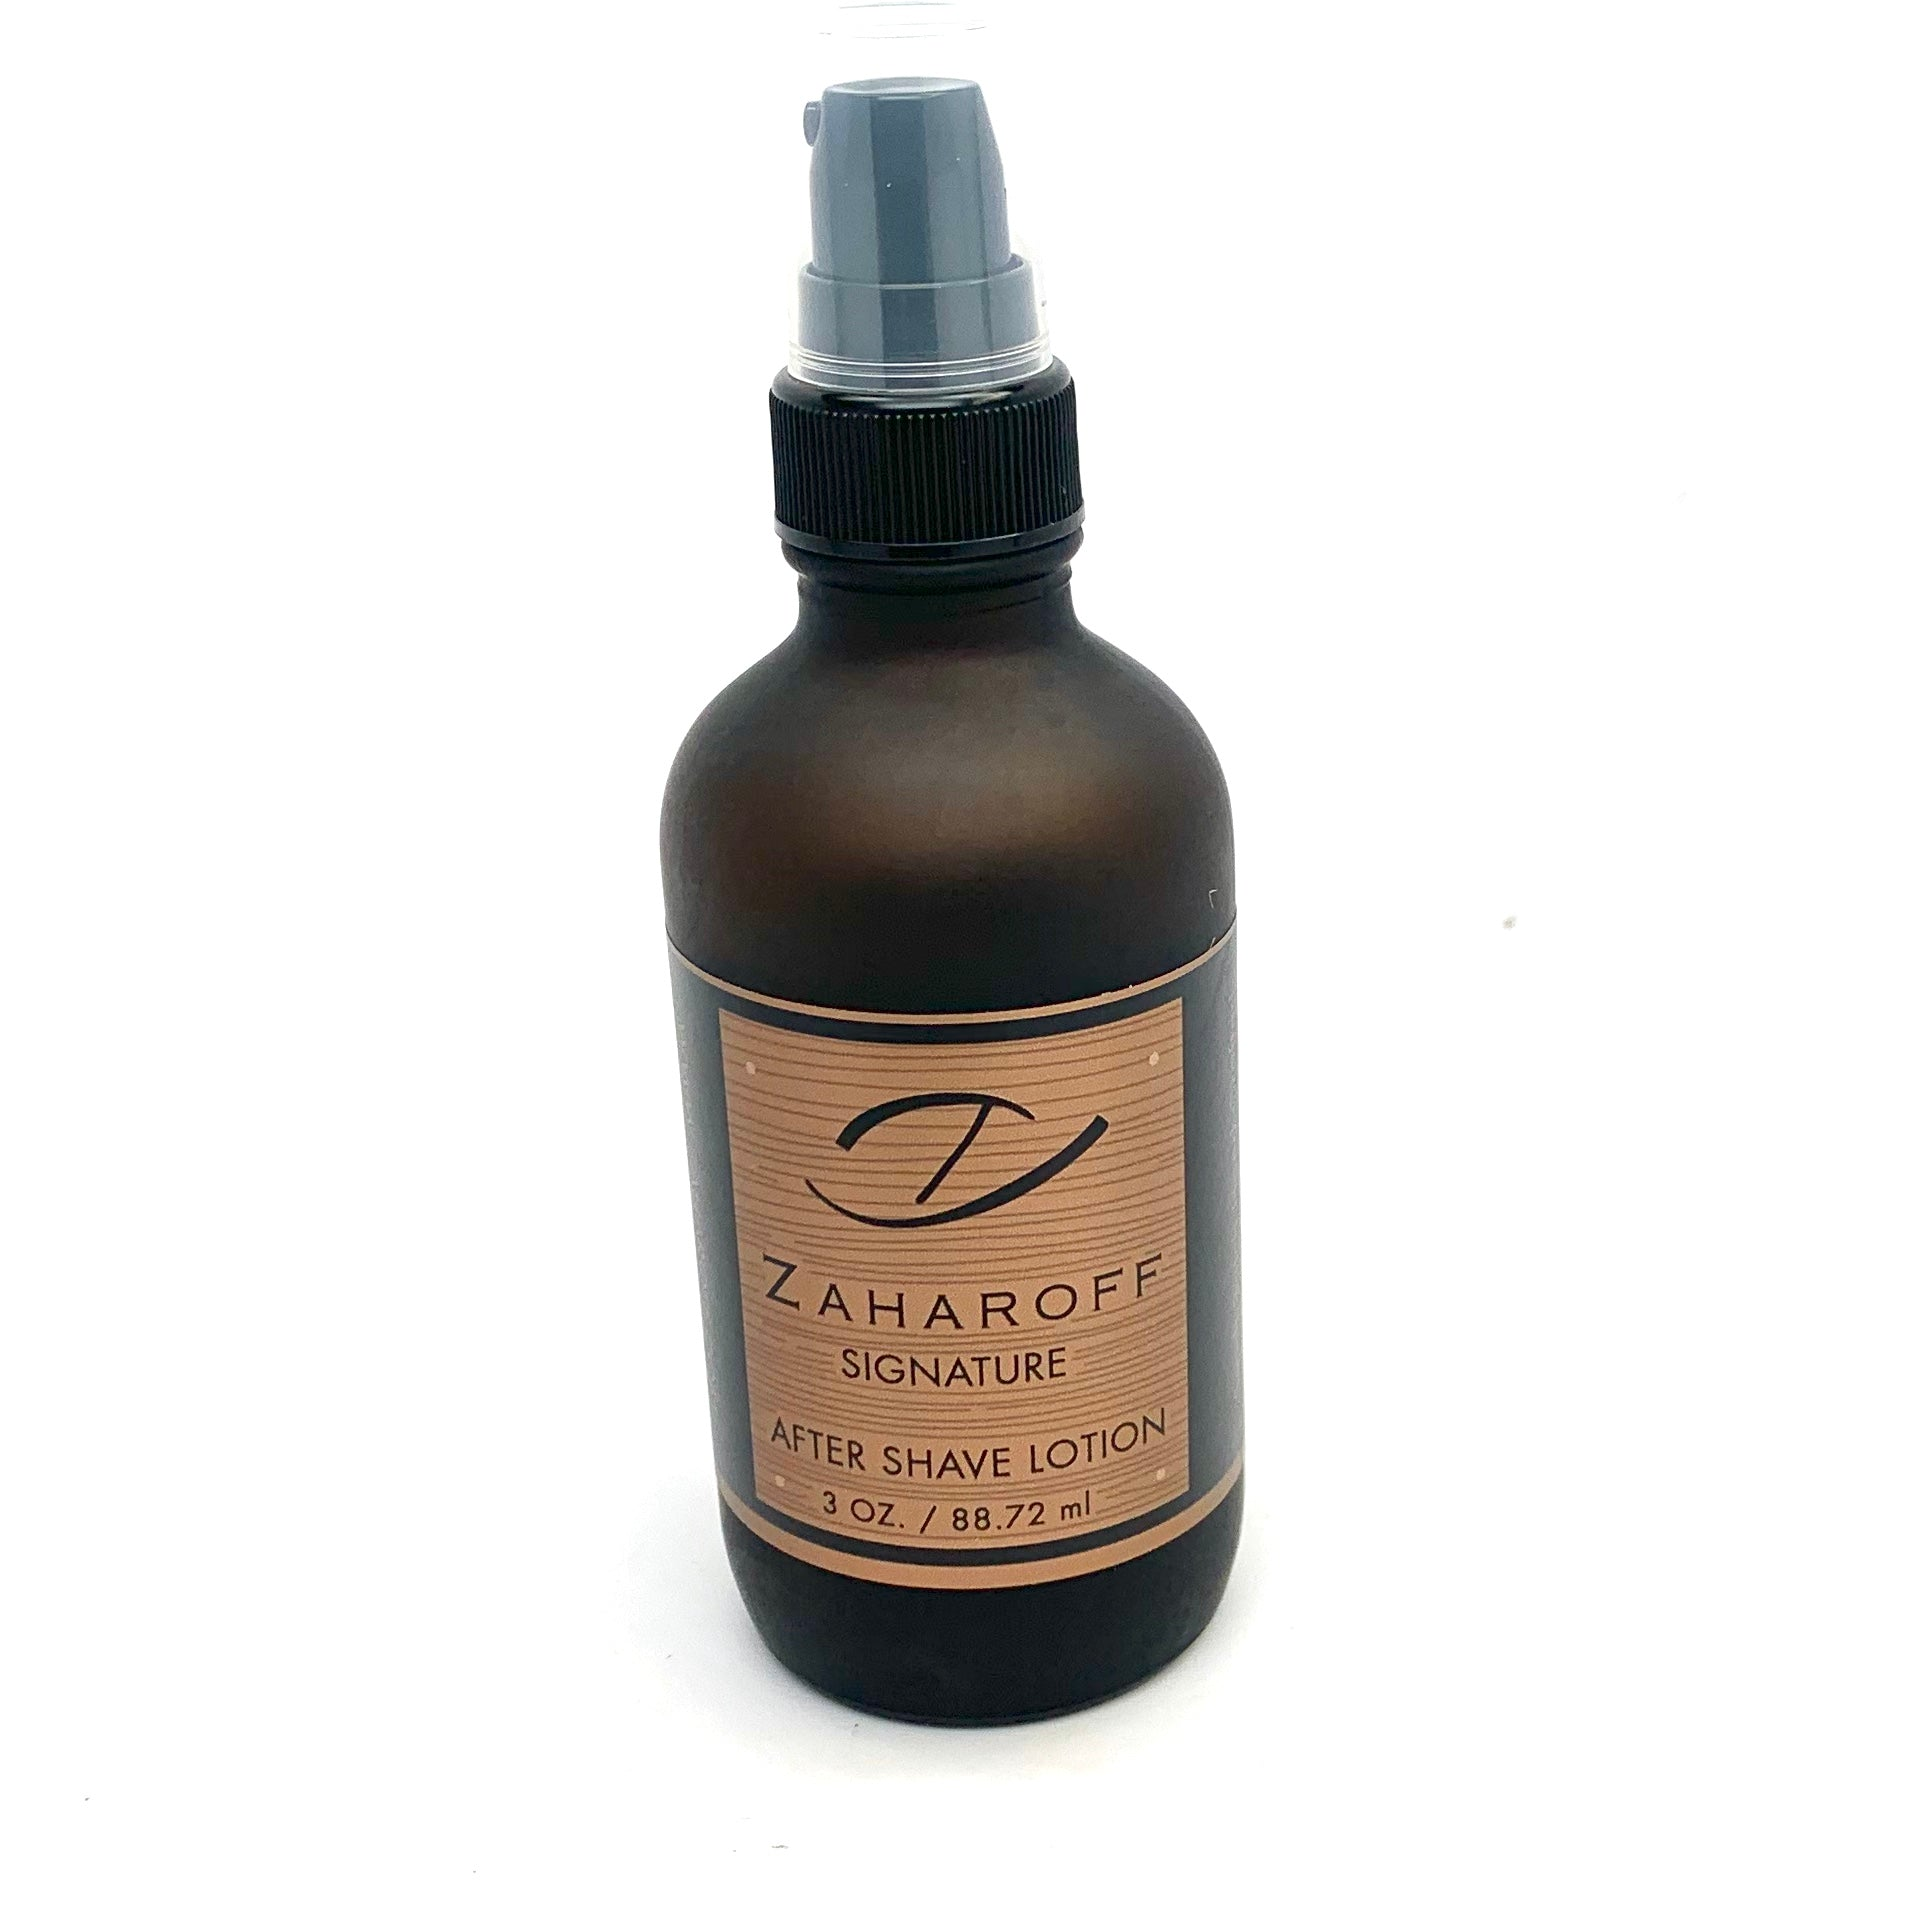 Zaharoff Signature After Shave Lotion